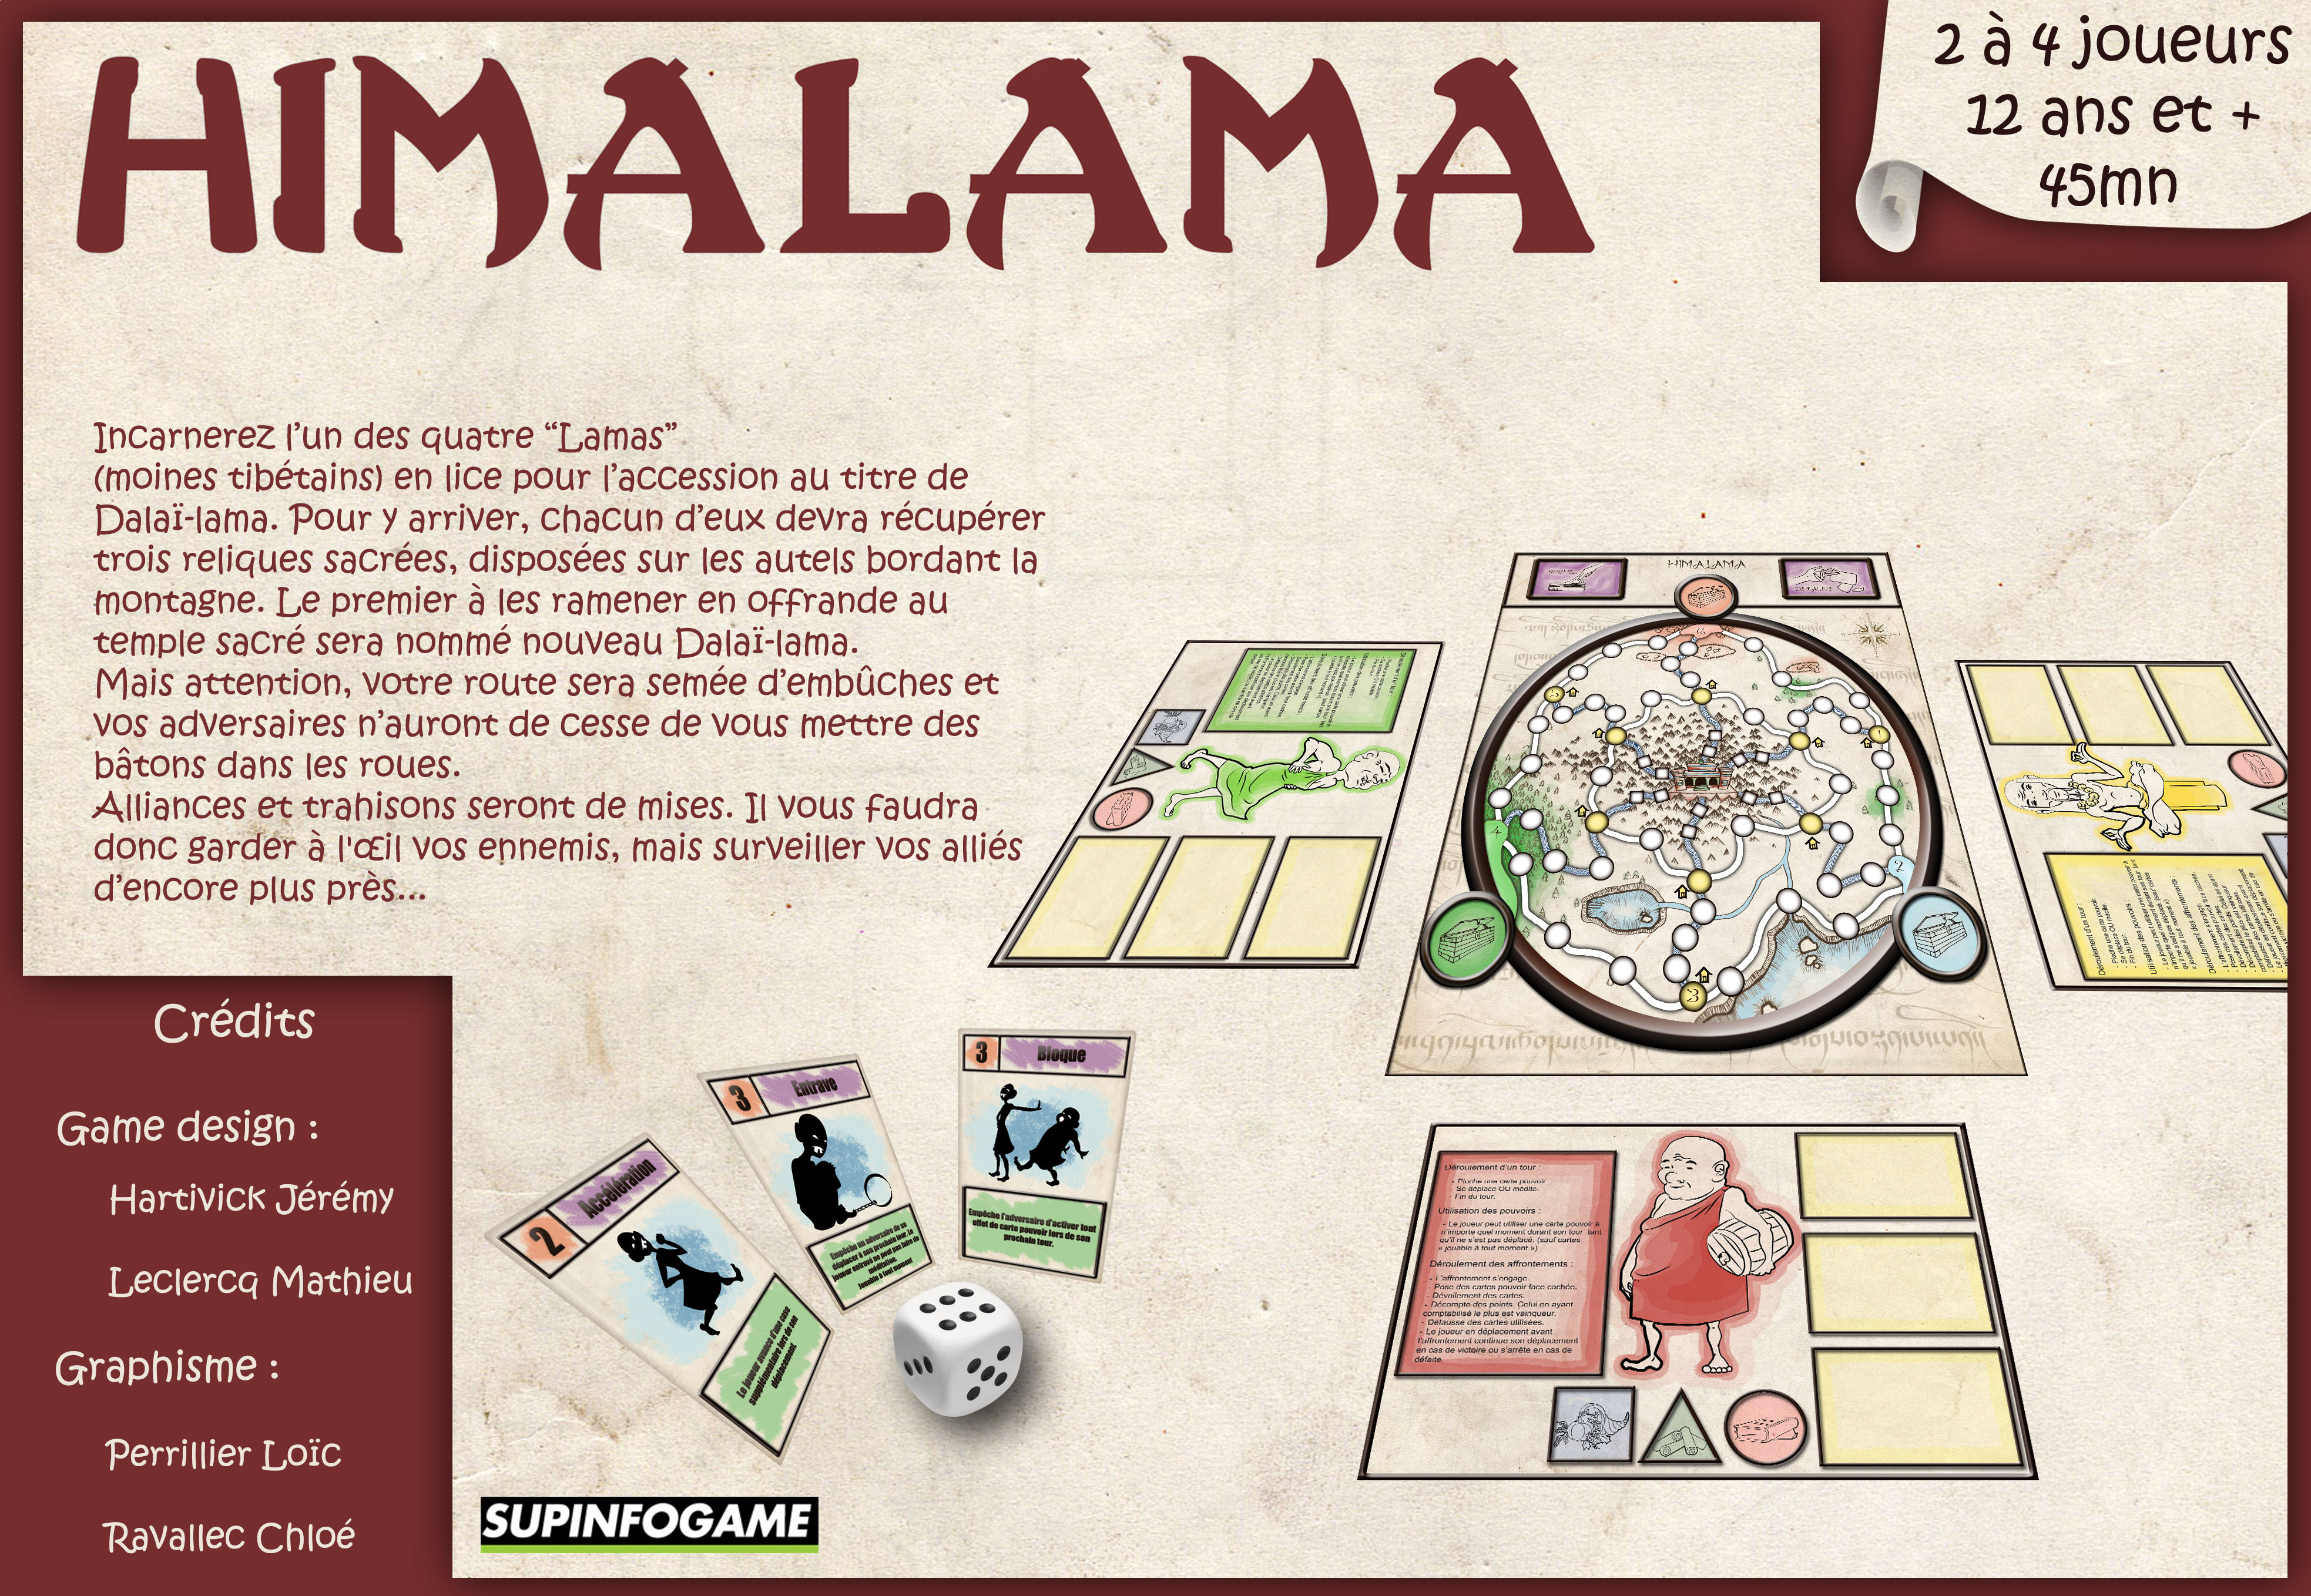 This is the back cover of my first boardgame: Himalama.